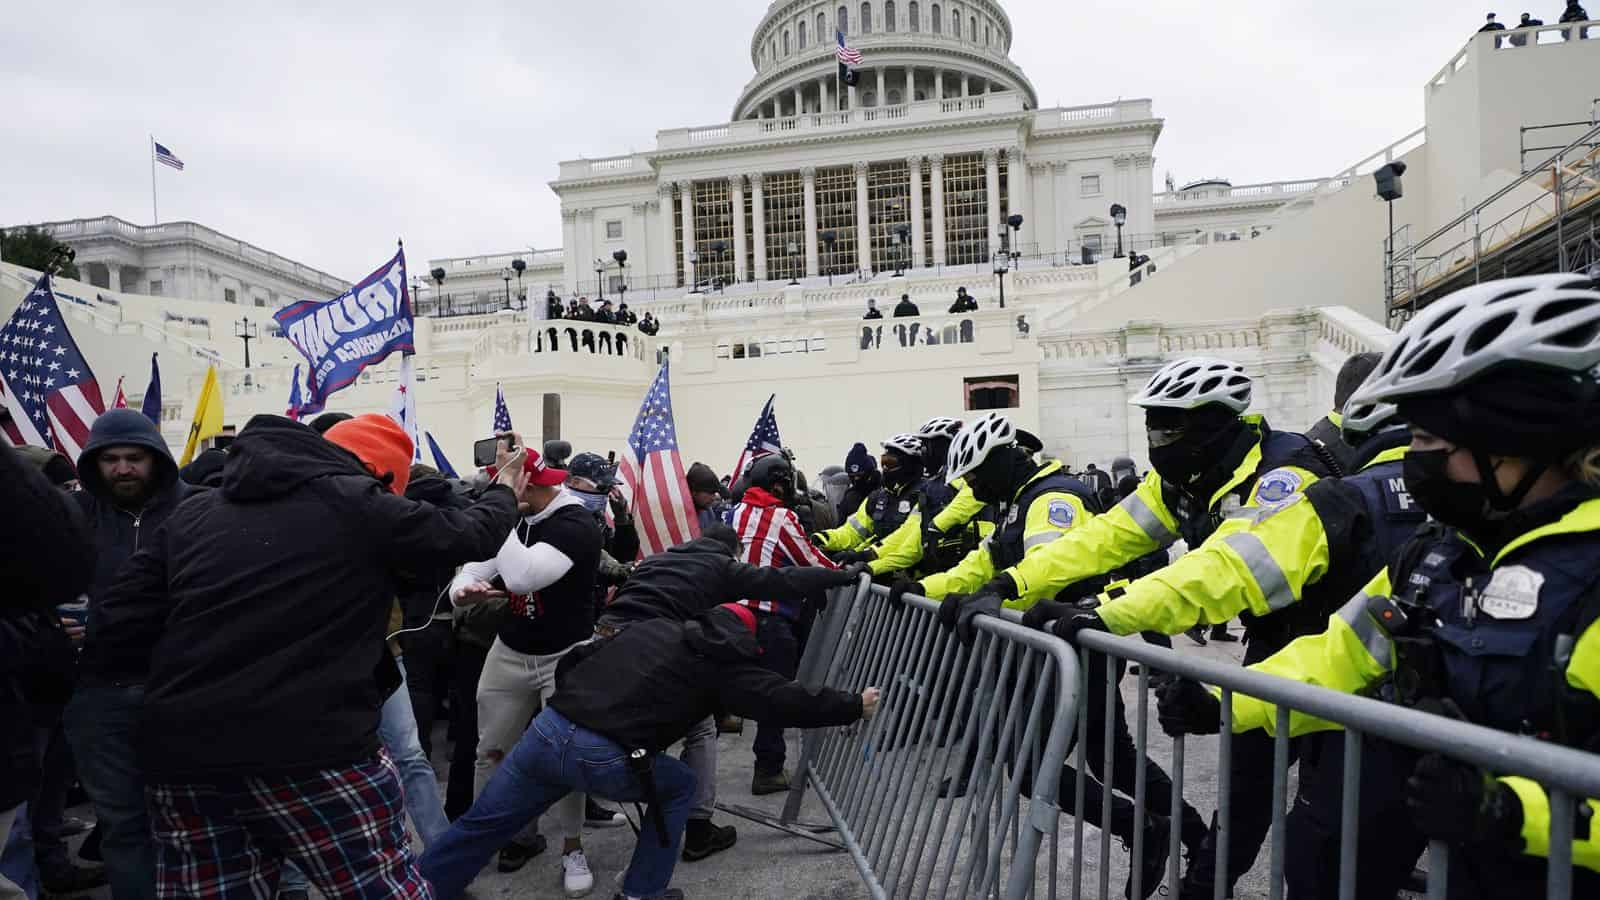 Trump supporters try to break through a police barrier Wednesday at the U.S. Capitol.